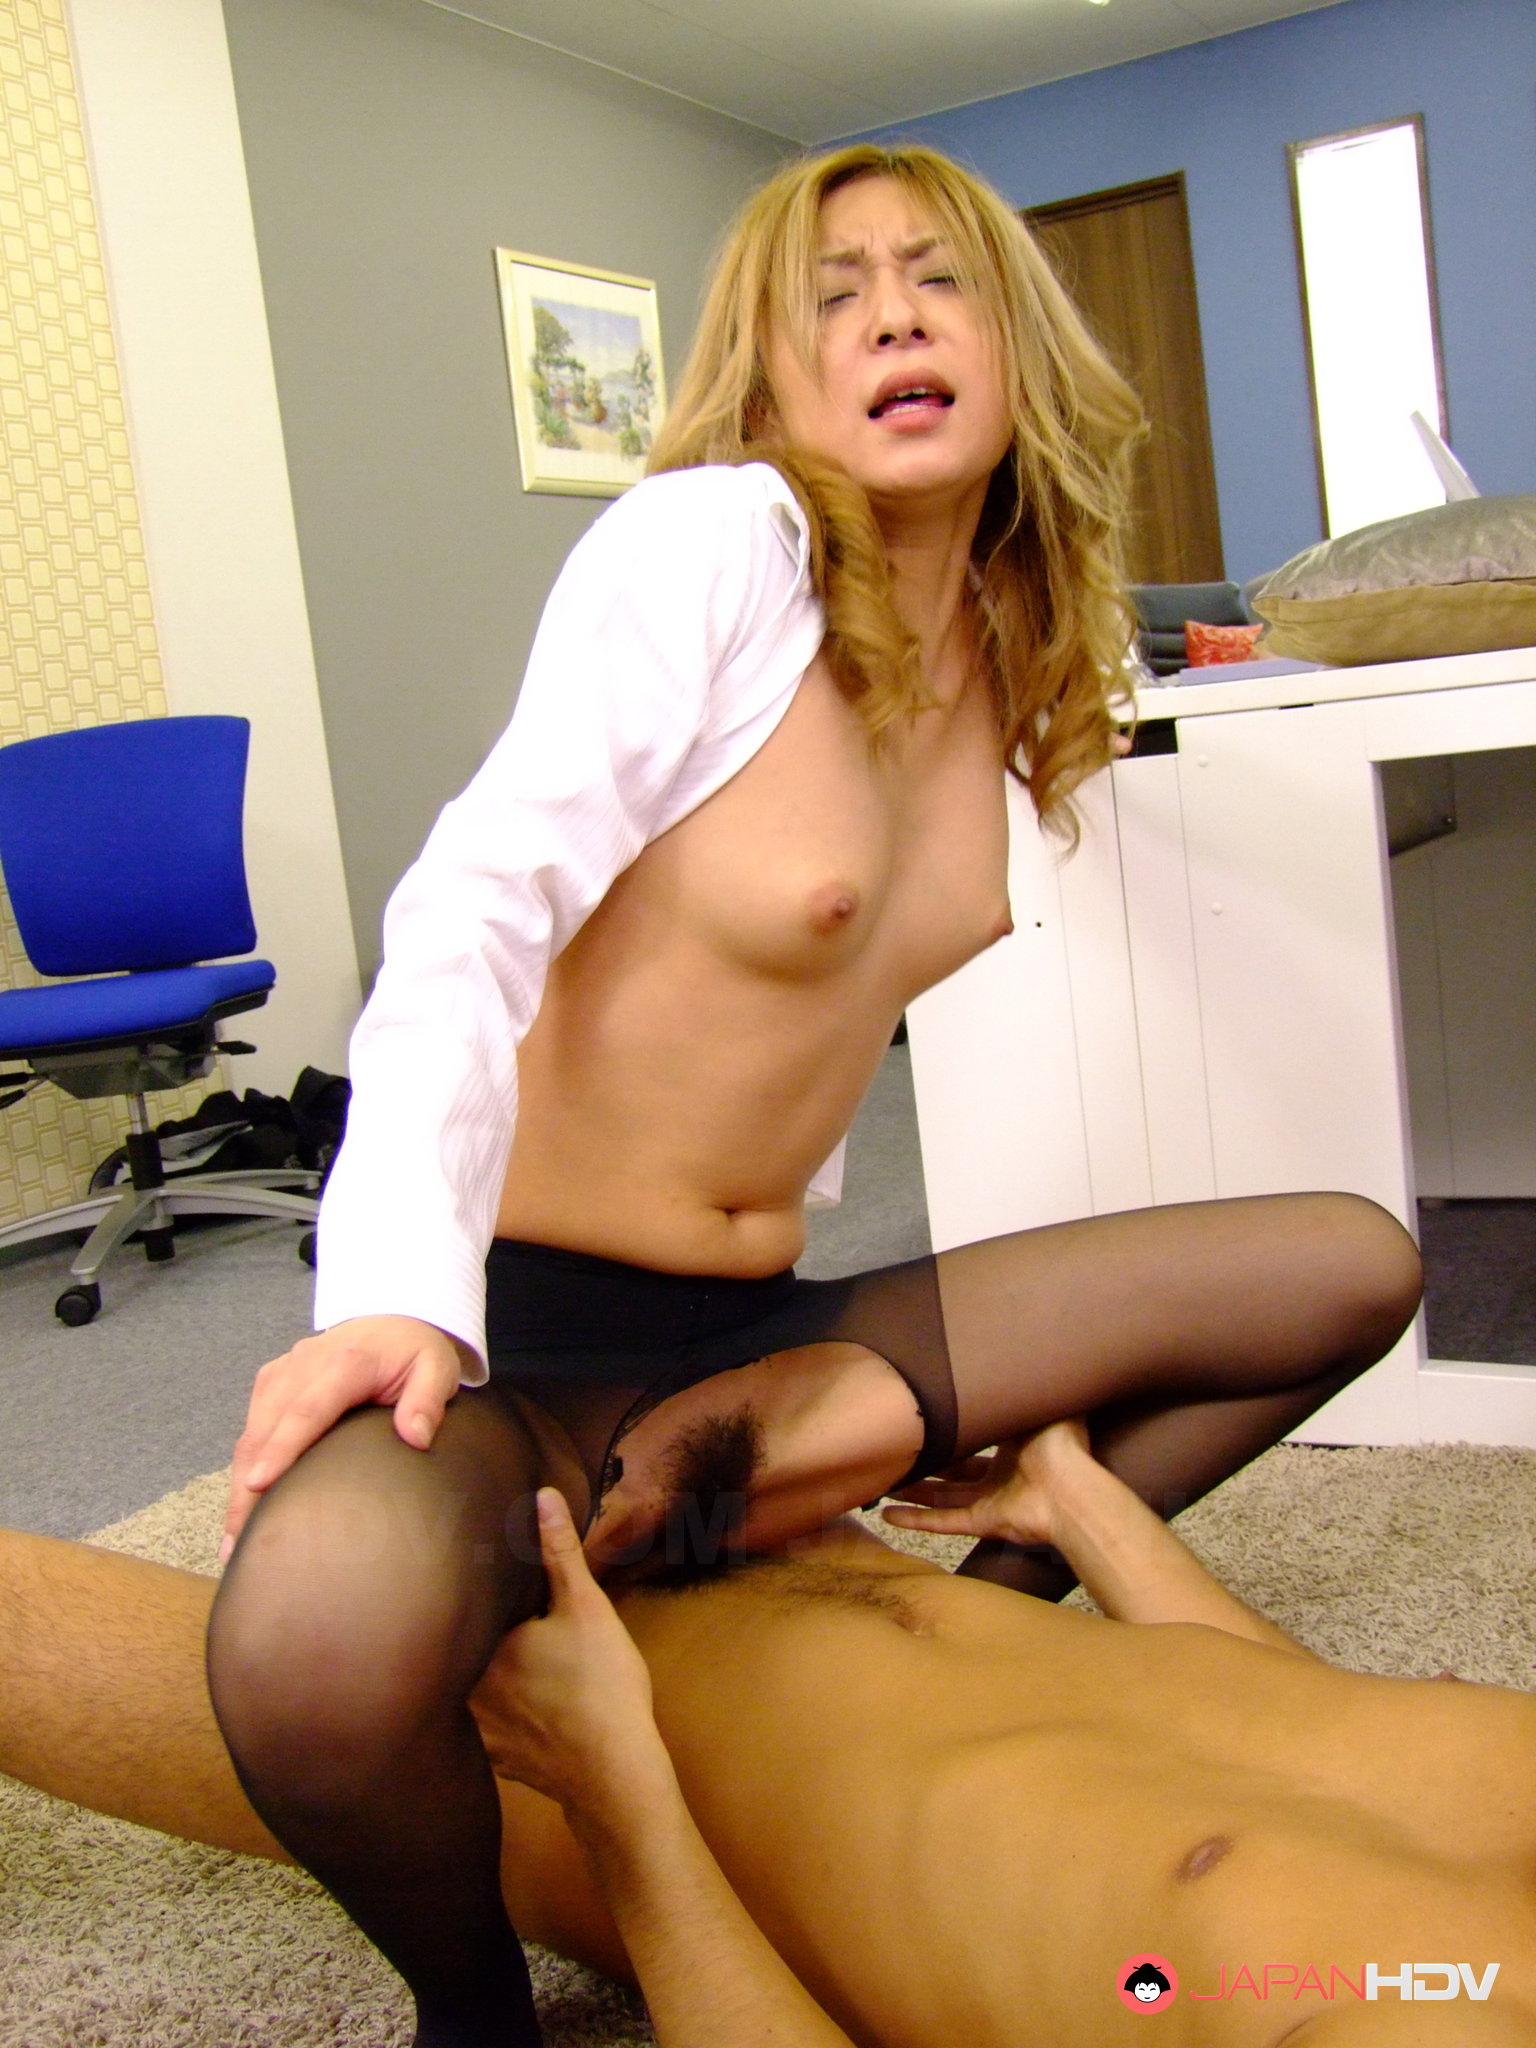 Woman group sex in office hatcher nude